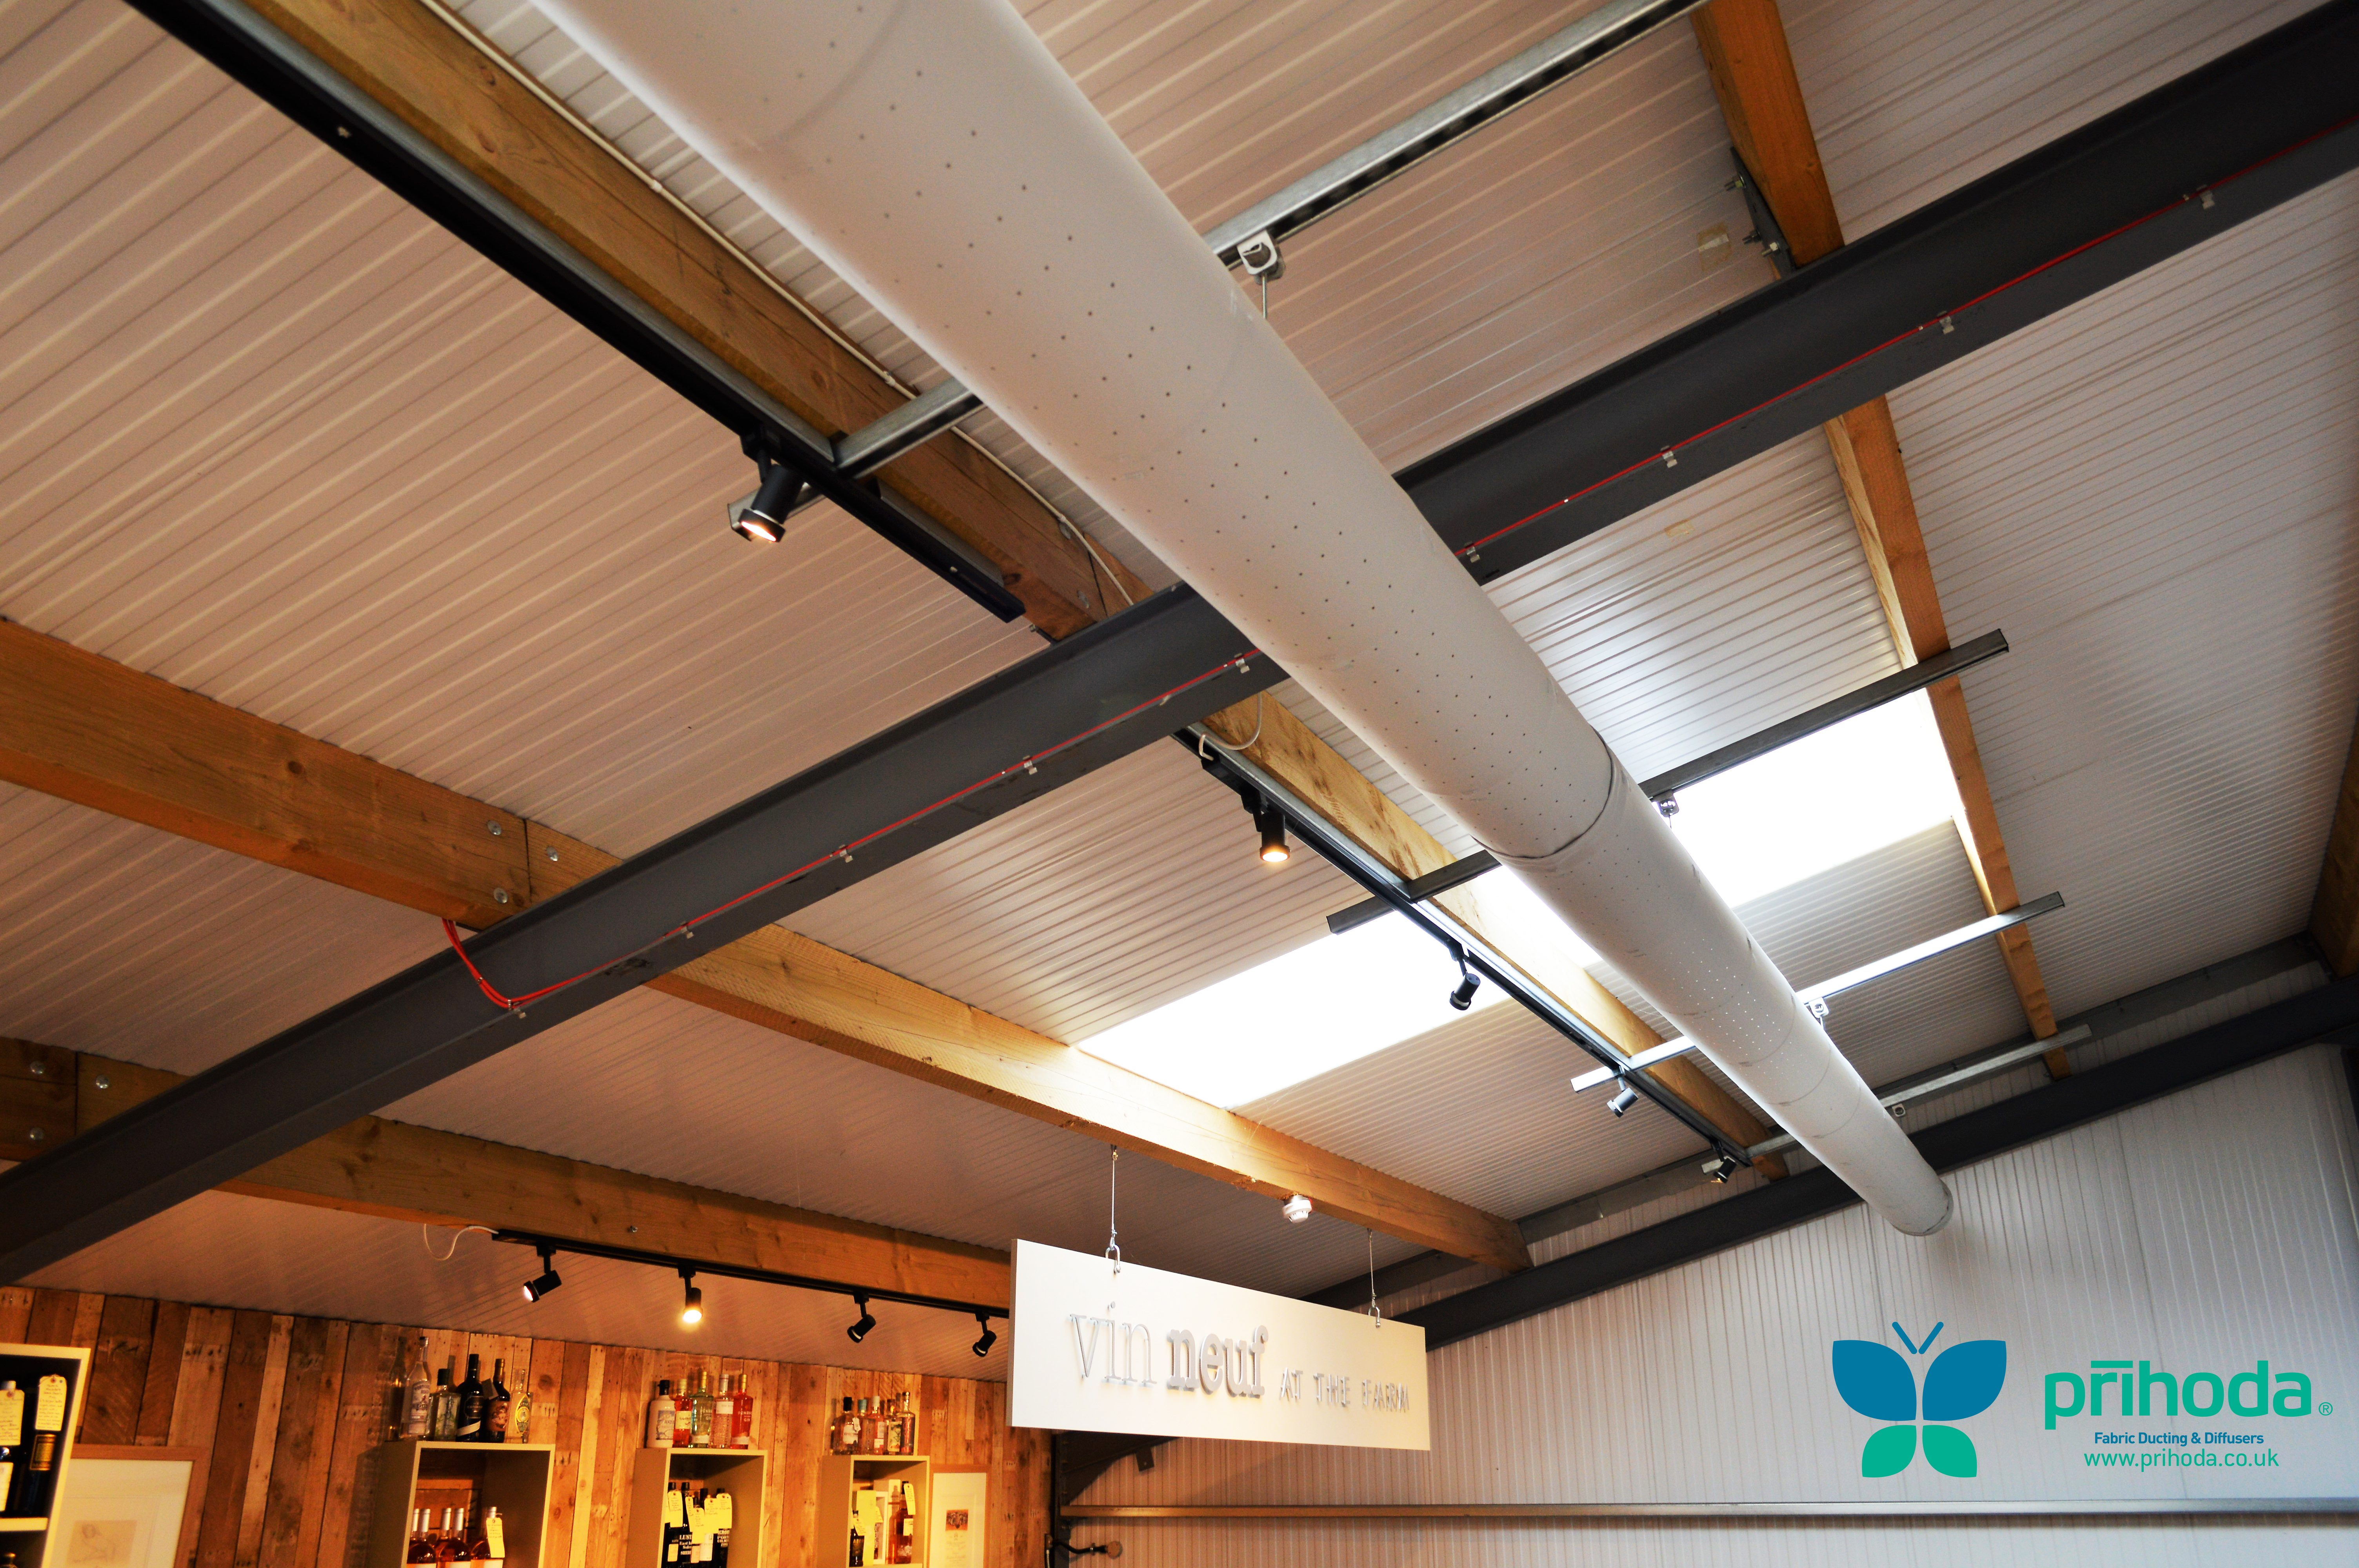 retail building ceiling with fabric ducting at The Farm